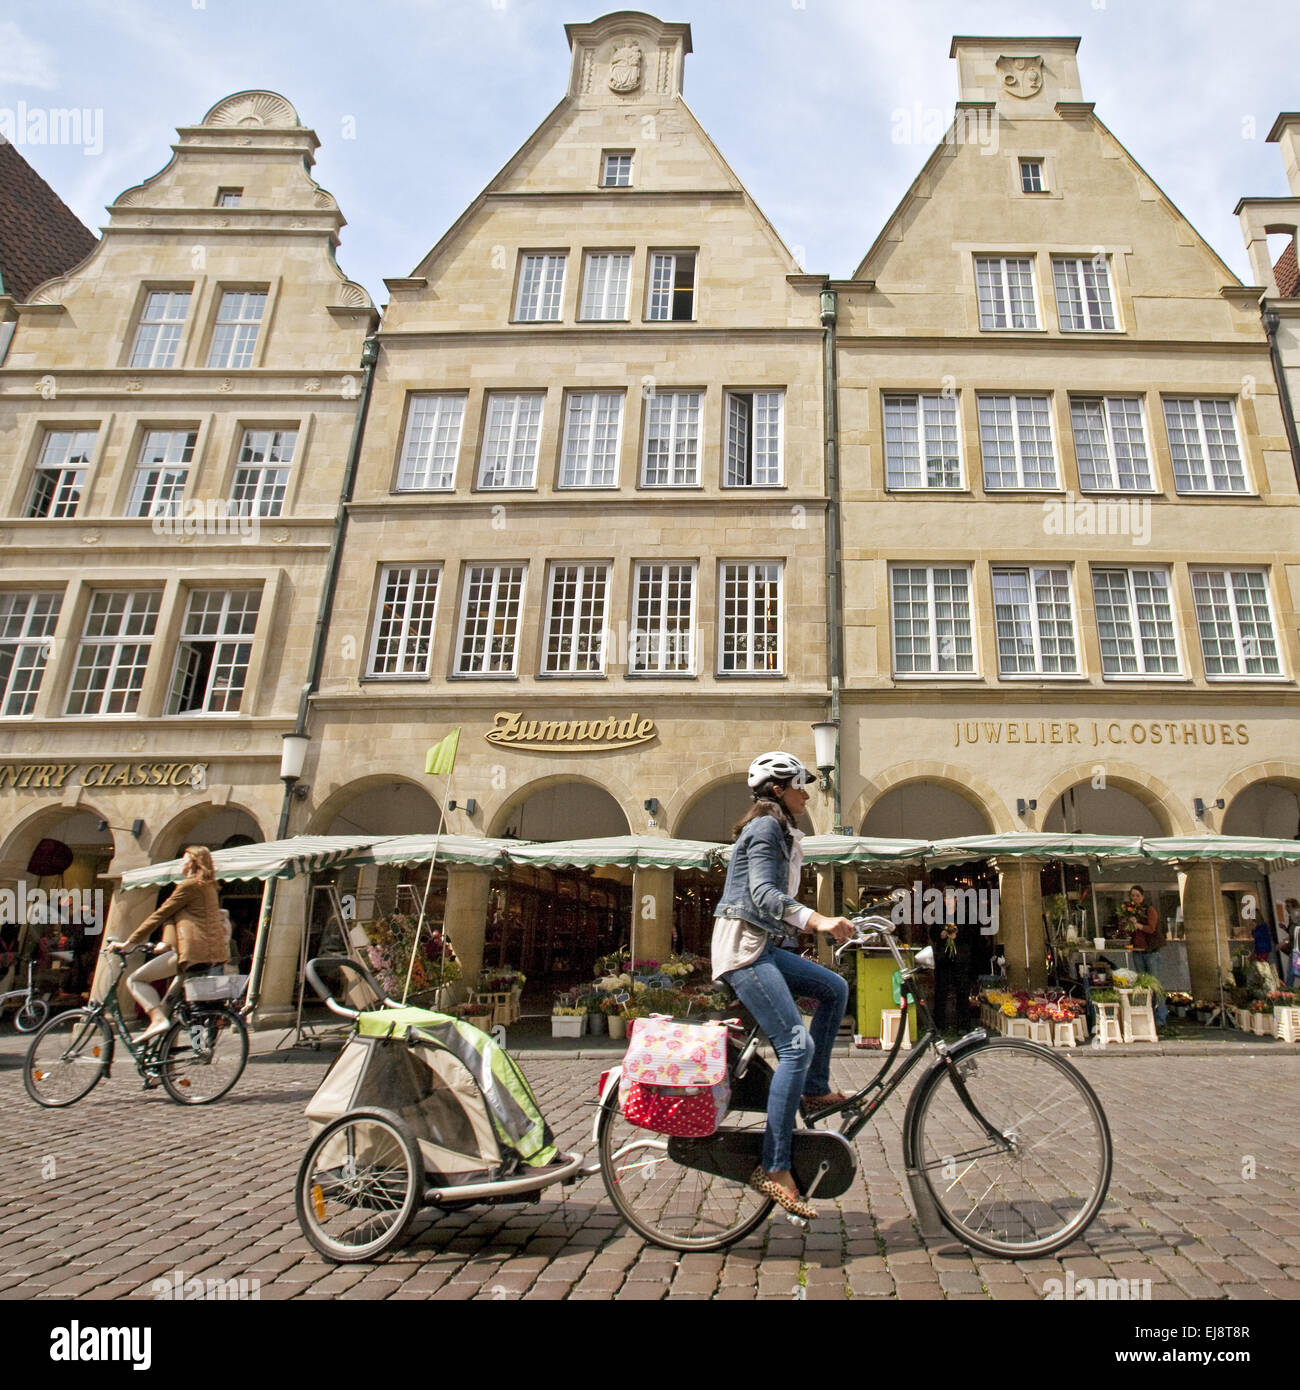 Two bicycle riders, Muenster, Germany - Stock Image